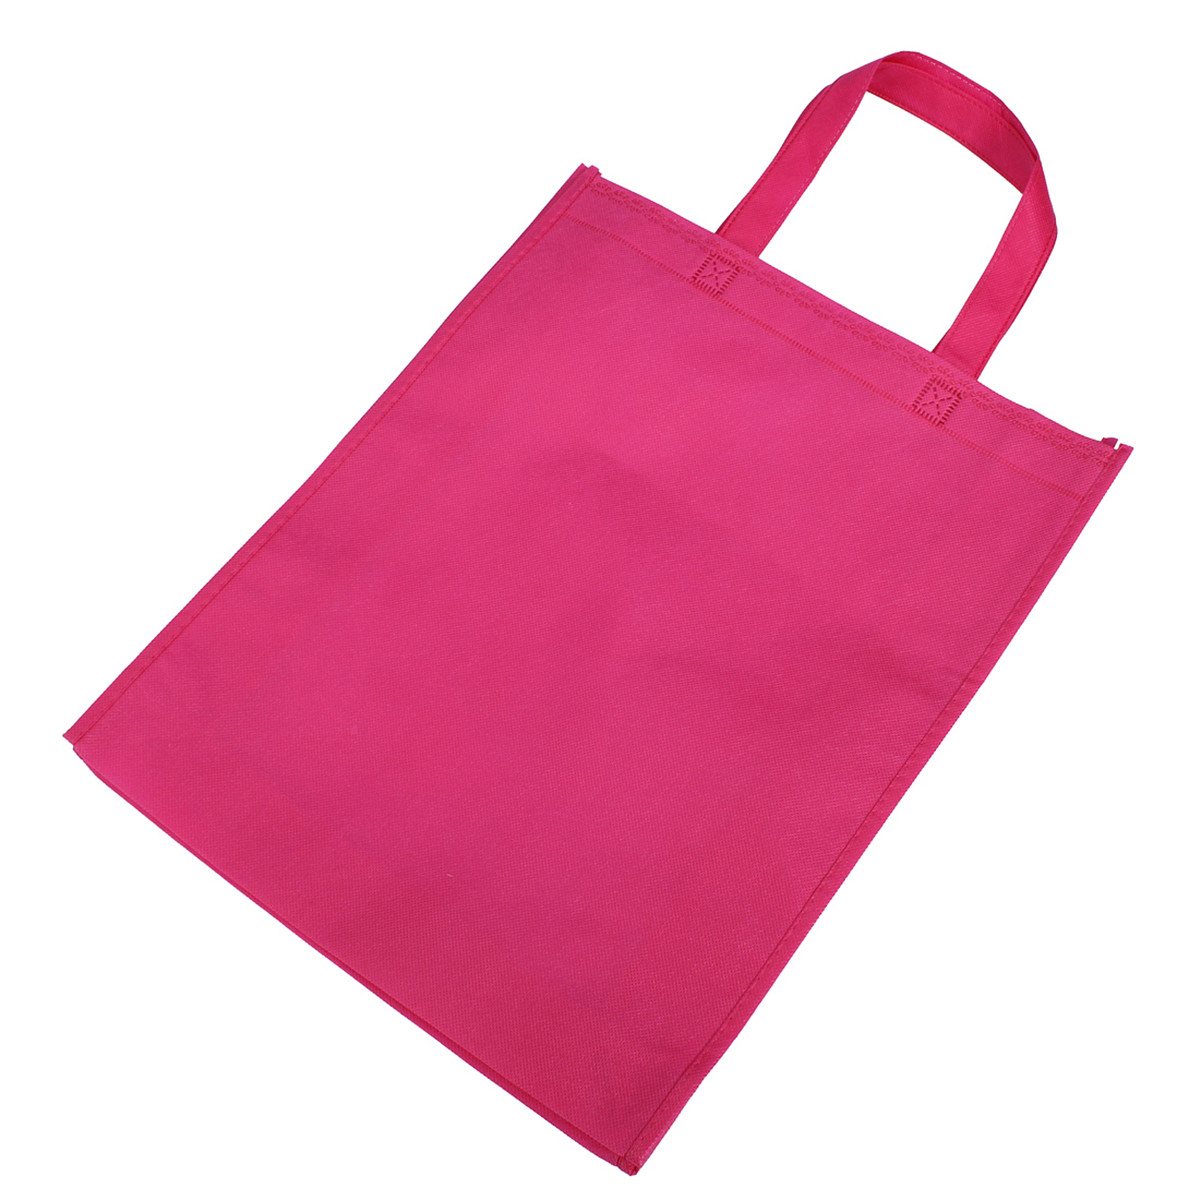 2017 Eco Reusable Shopping Bags Cloth Fabric Grocery Packing ...